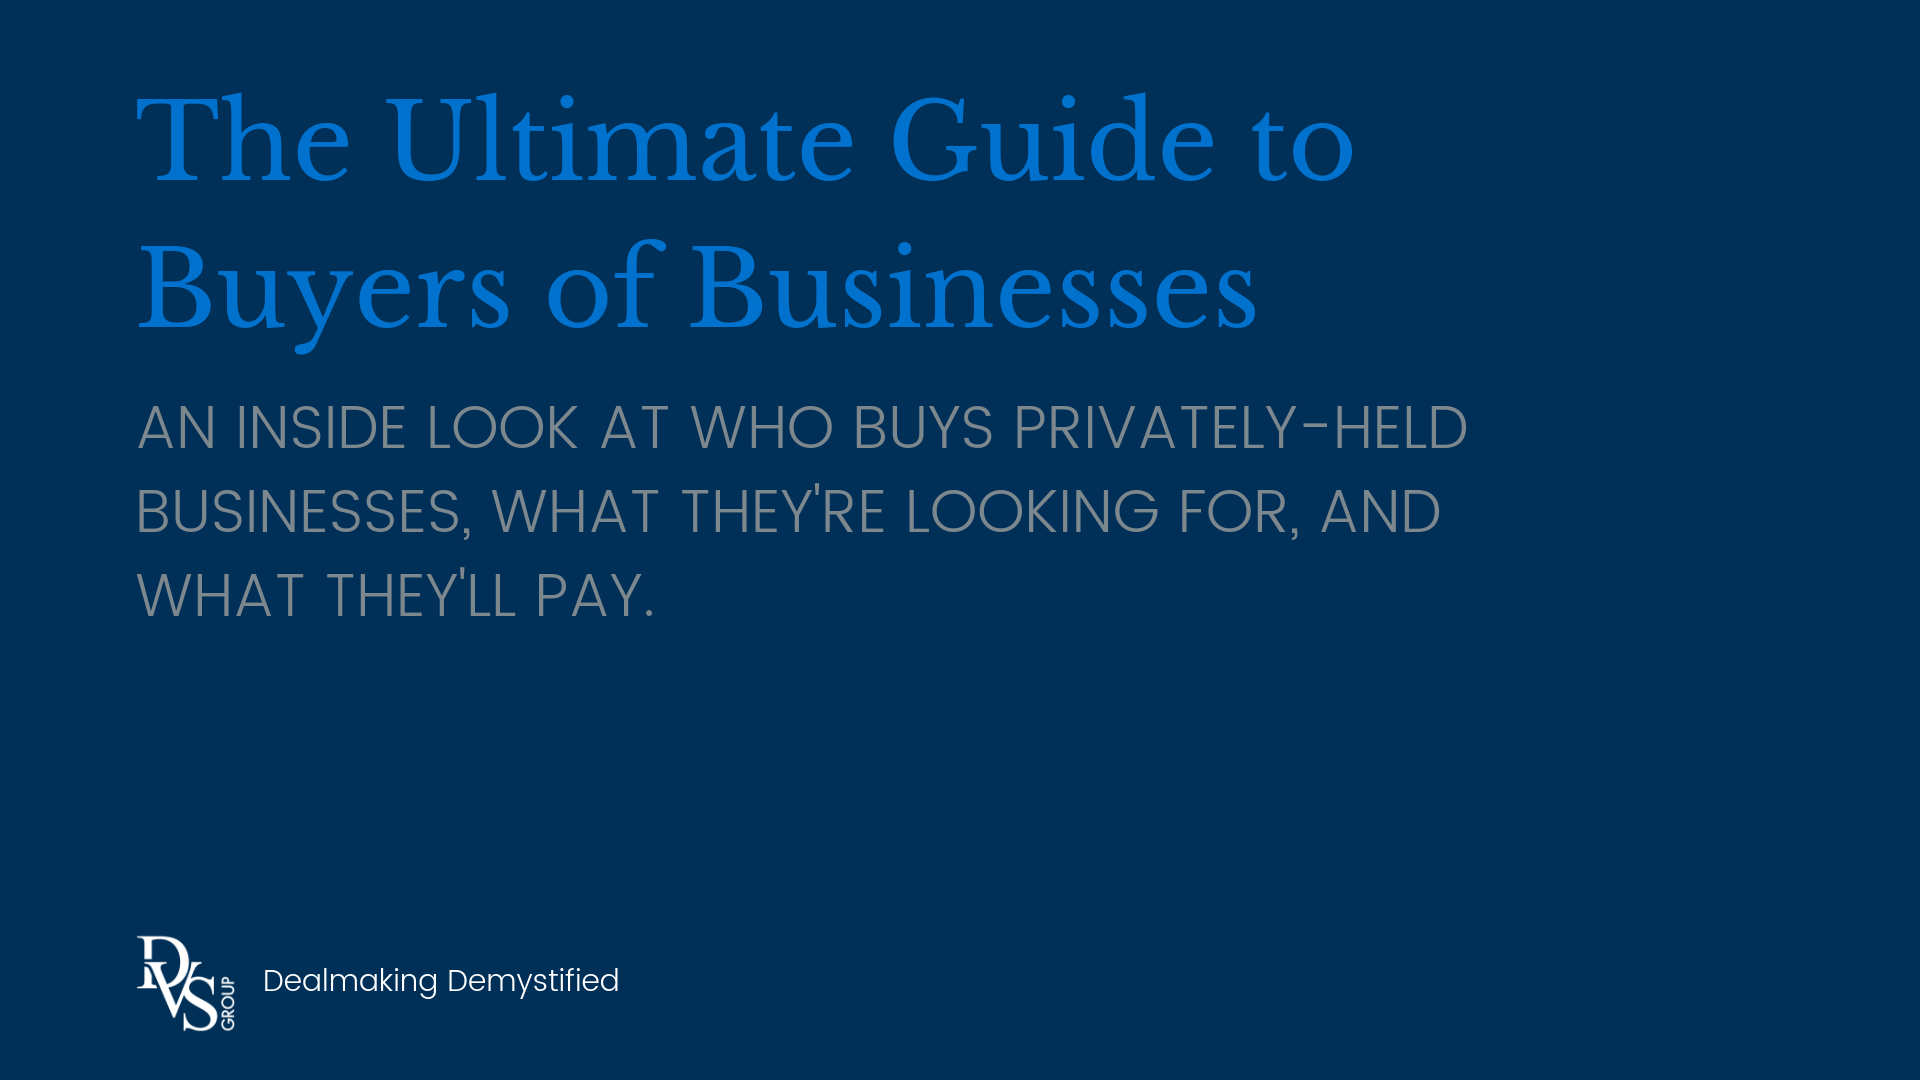 The Ultimate Guide to Buyers of Businesses